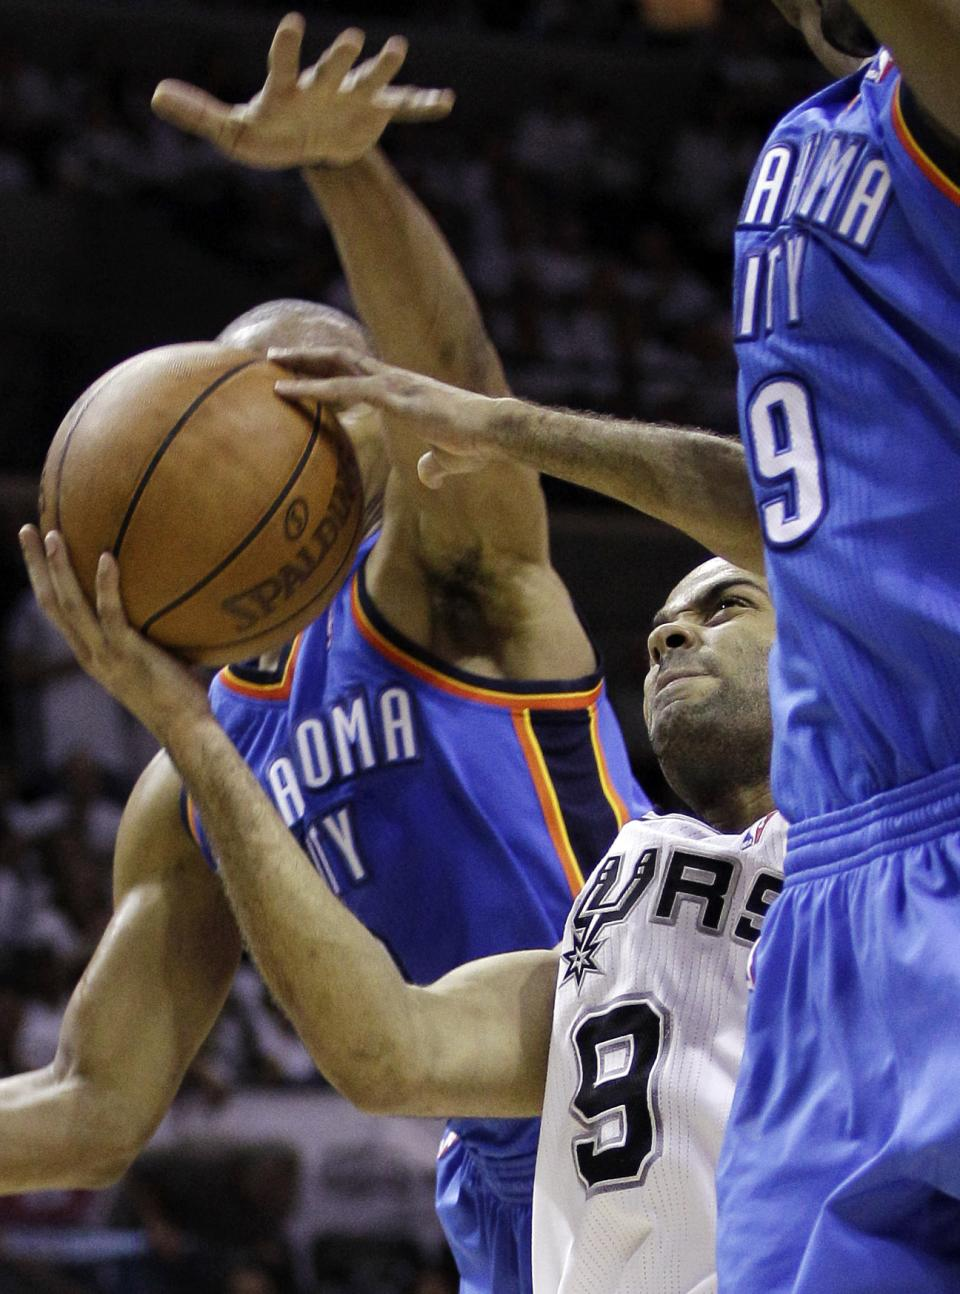 San Antonio Spurs point guard Tony Parker (9), of France, shoots between Oklahoma City Thunder point guard Russell Westbrook, left, and Serge Ibaka (9) during the first half of Game 5 in the NBA basketball Western Conference finals, Monday, June 4, 2012, in San Antonio. (AP Photo/Eric Gay)